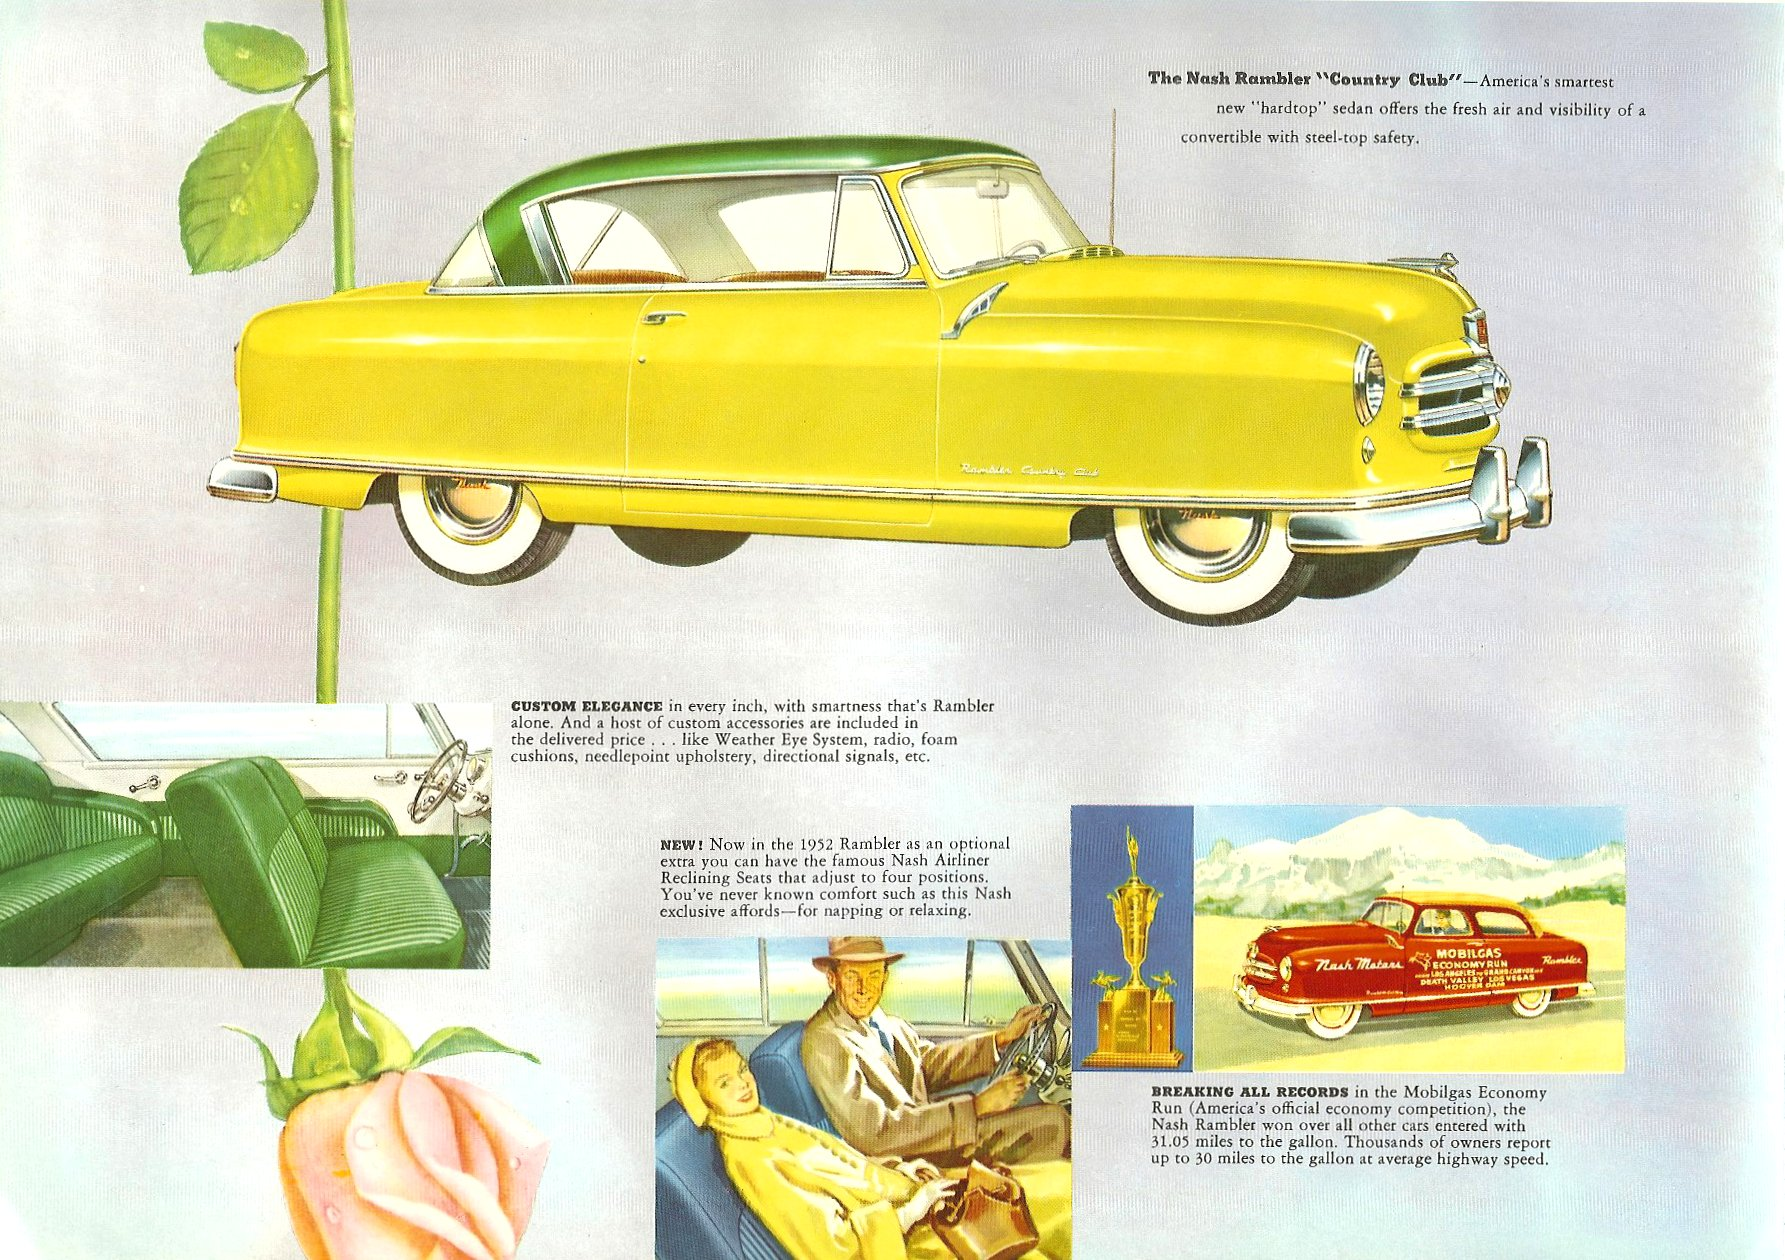 1952 The Golden Airflyte 1902-1952 Golden Anniversary By NASH Sales Catalog NSP-52-950-250M-3-52 Page 16, 12″x9″